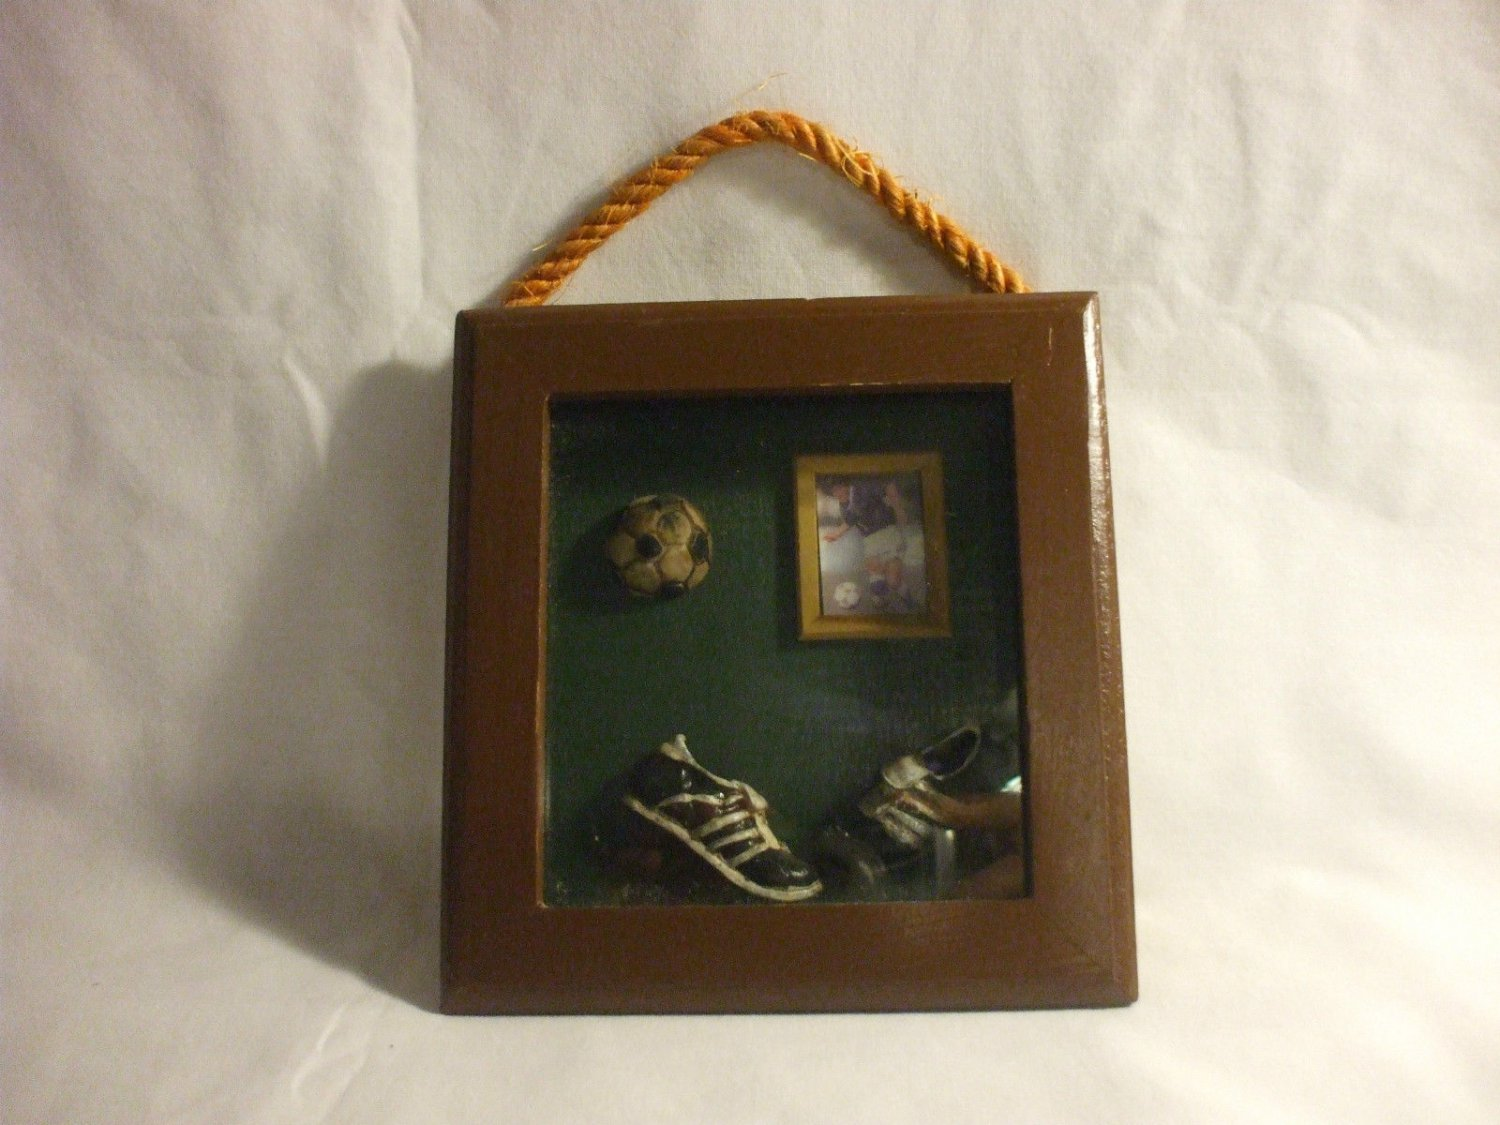 Shabby Chic Rustic Wooden Soccer Frame Home Decoration